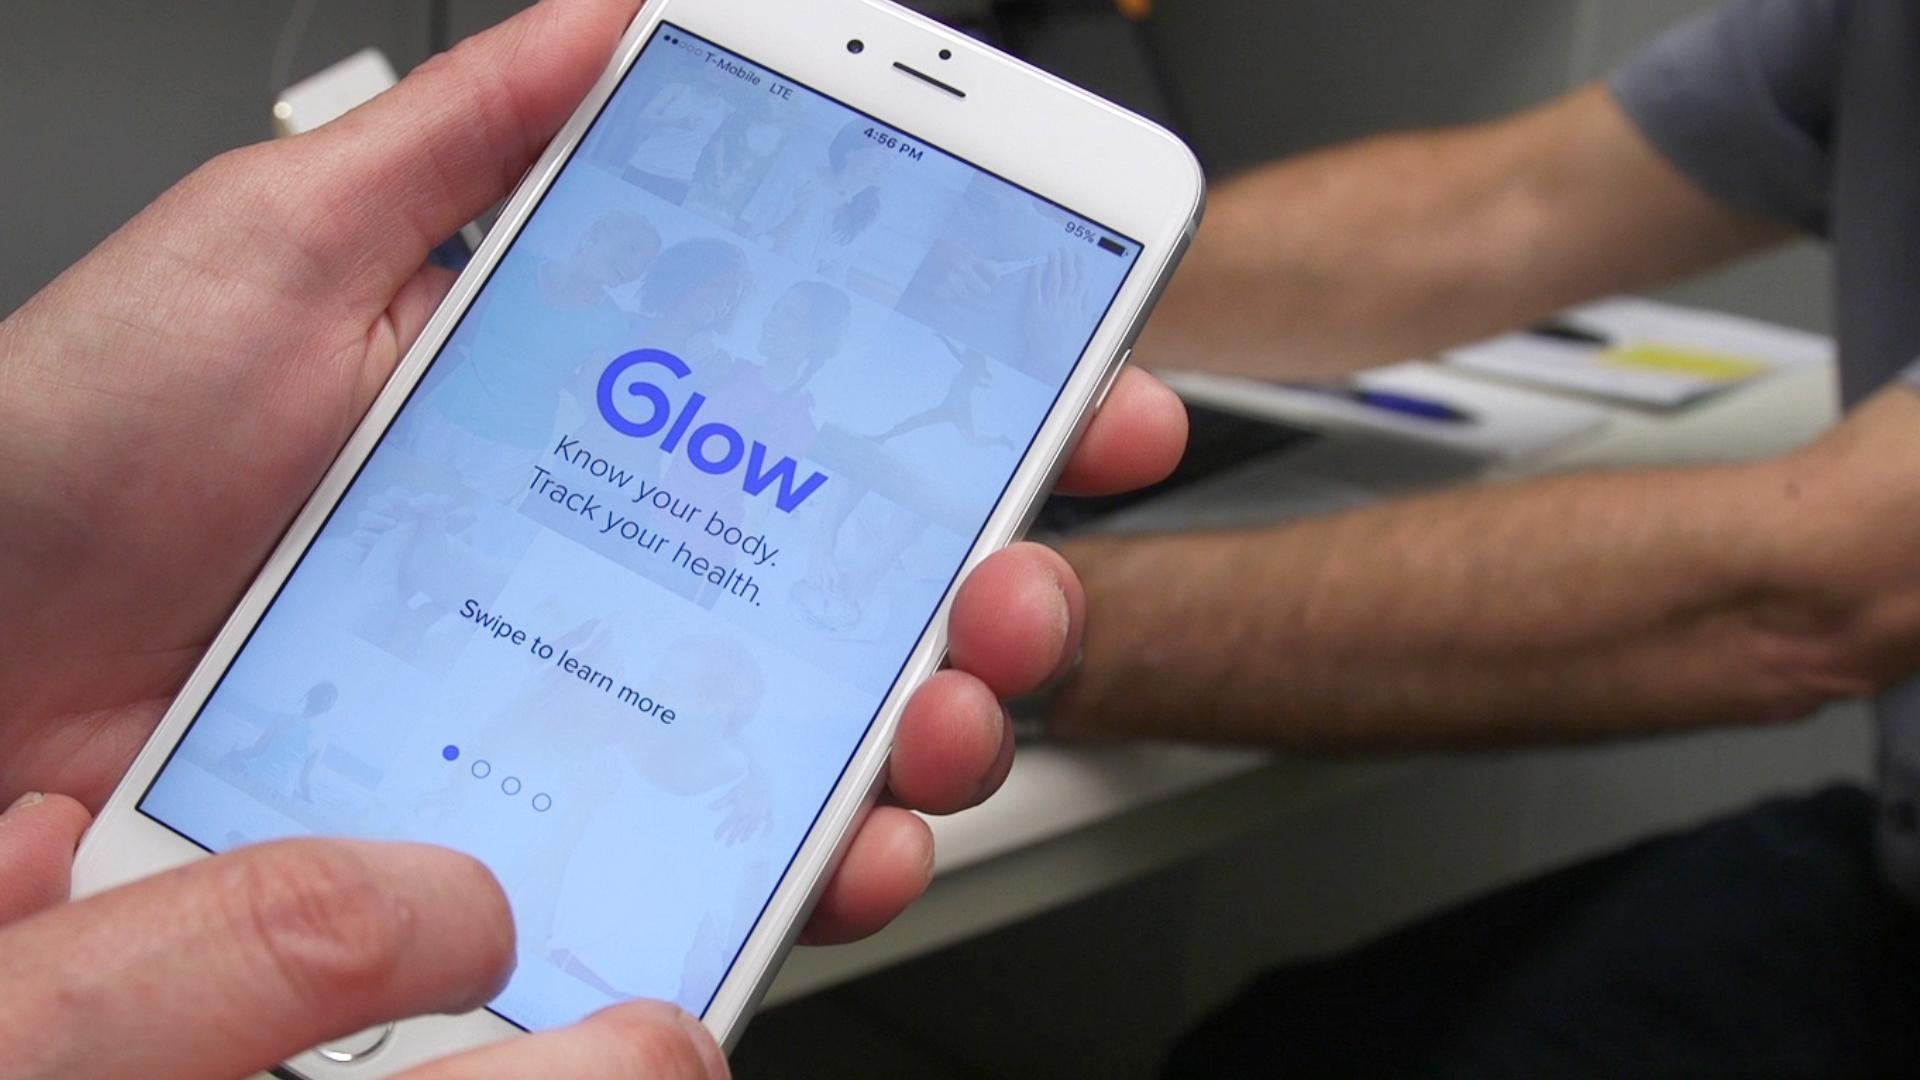 Glow Pregnancy App Exposed Women To Privacy Threats Consumer Reports Finds Consumer Reports